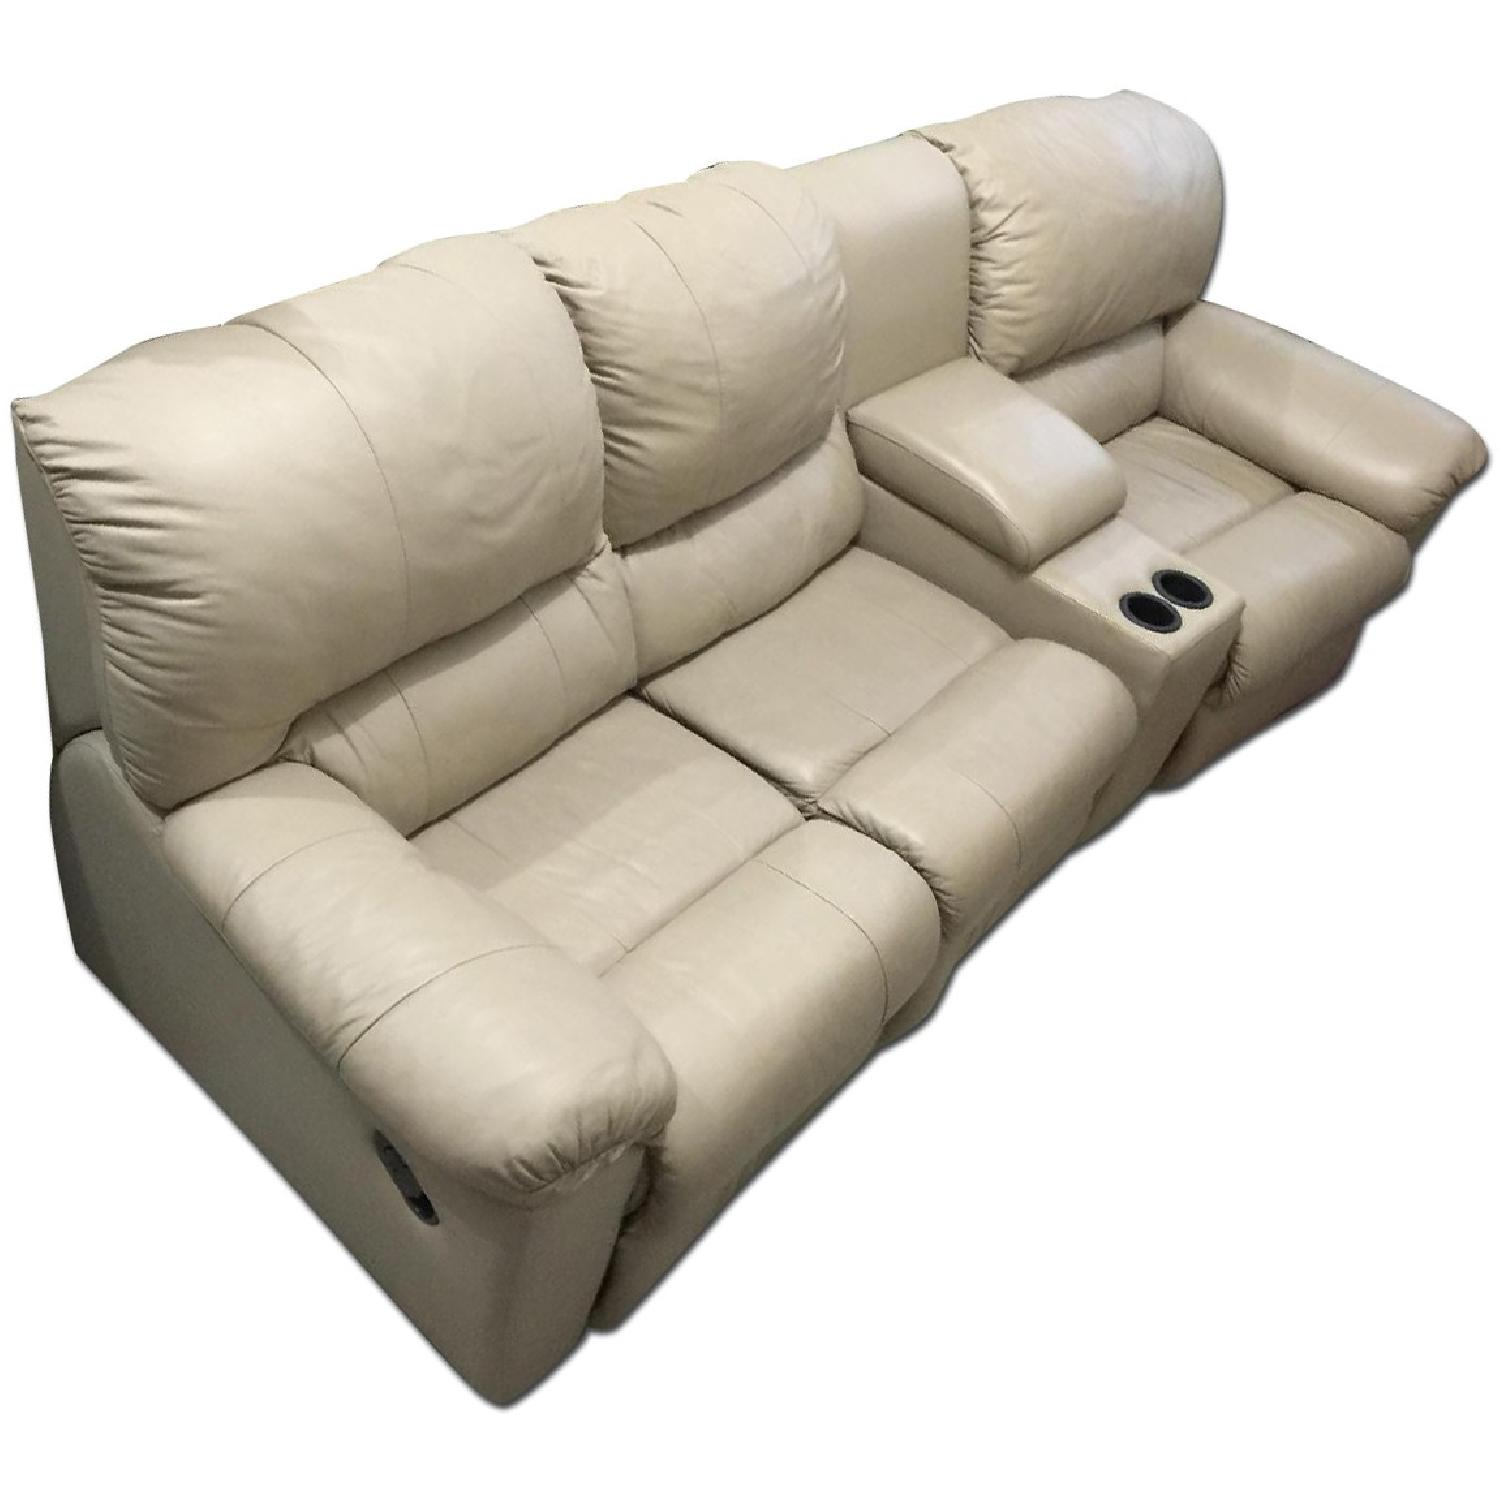 Tan Leather 4 Piece Sectional Sofa w/ Three Reclining Chairs - image-0